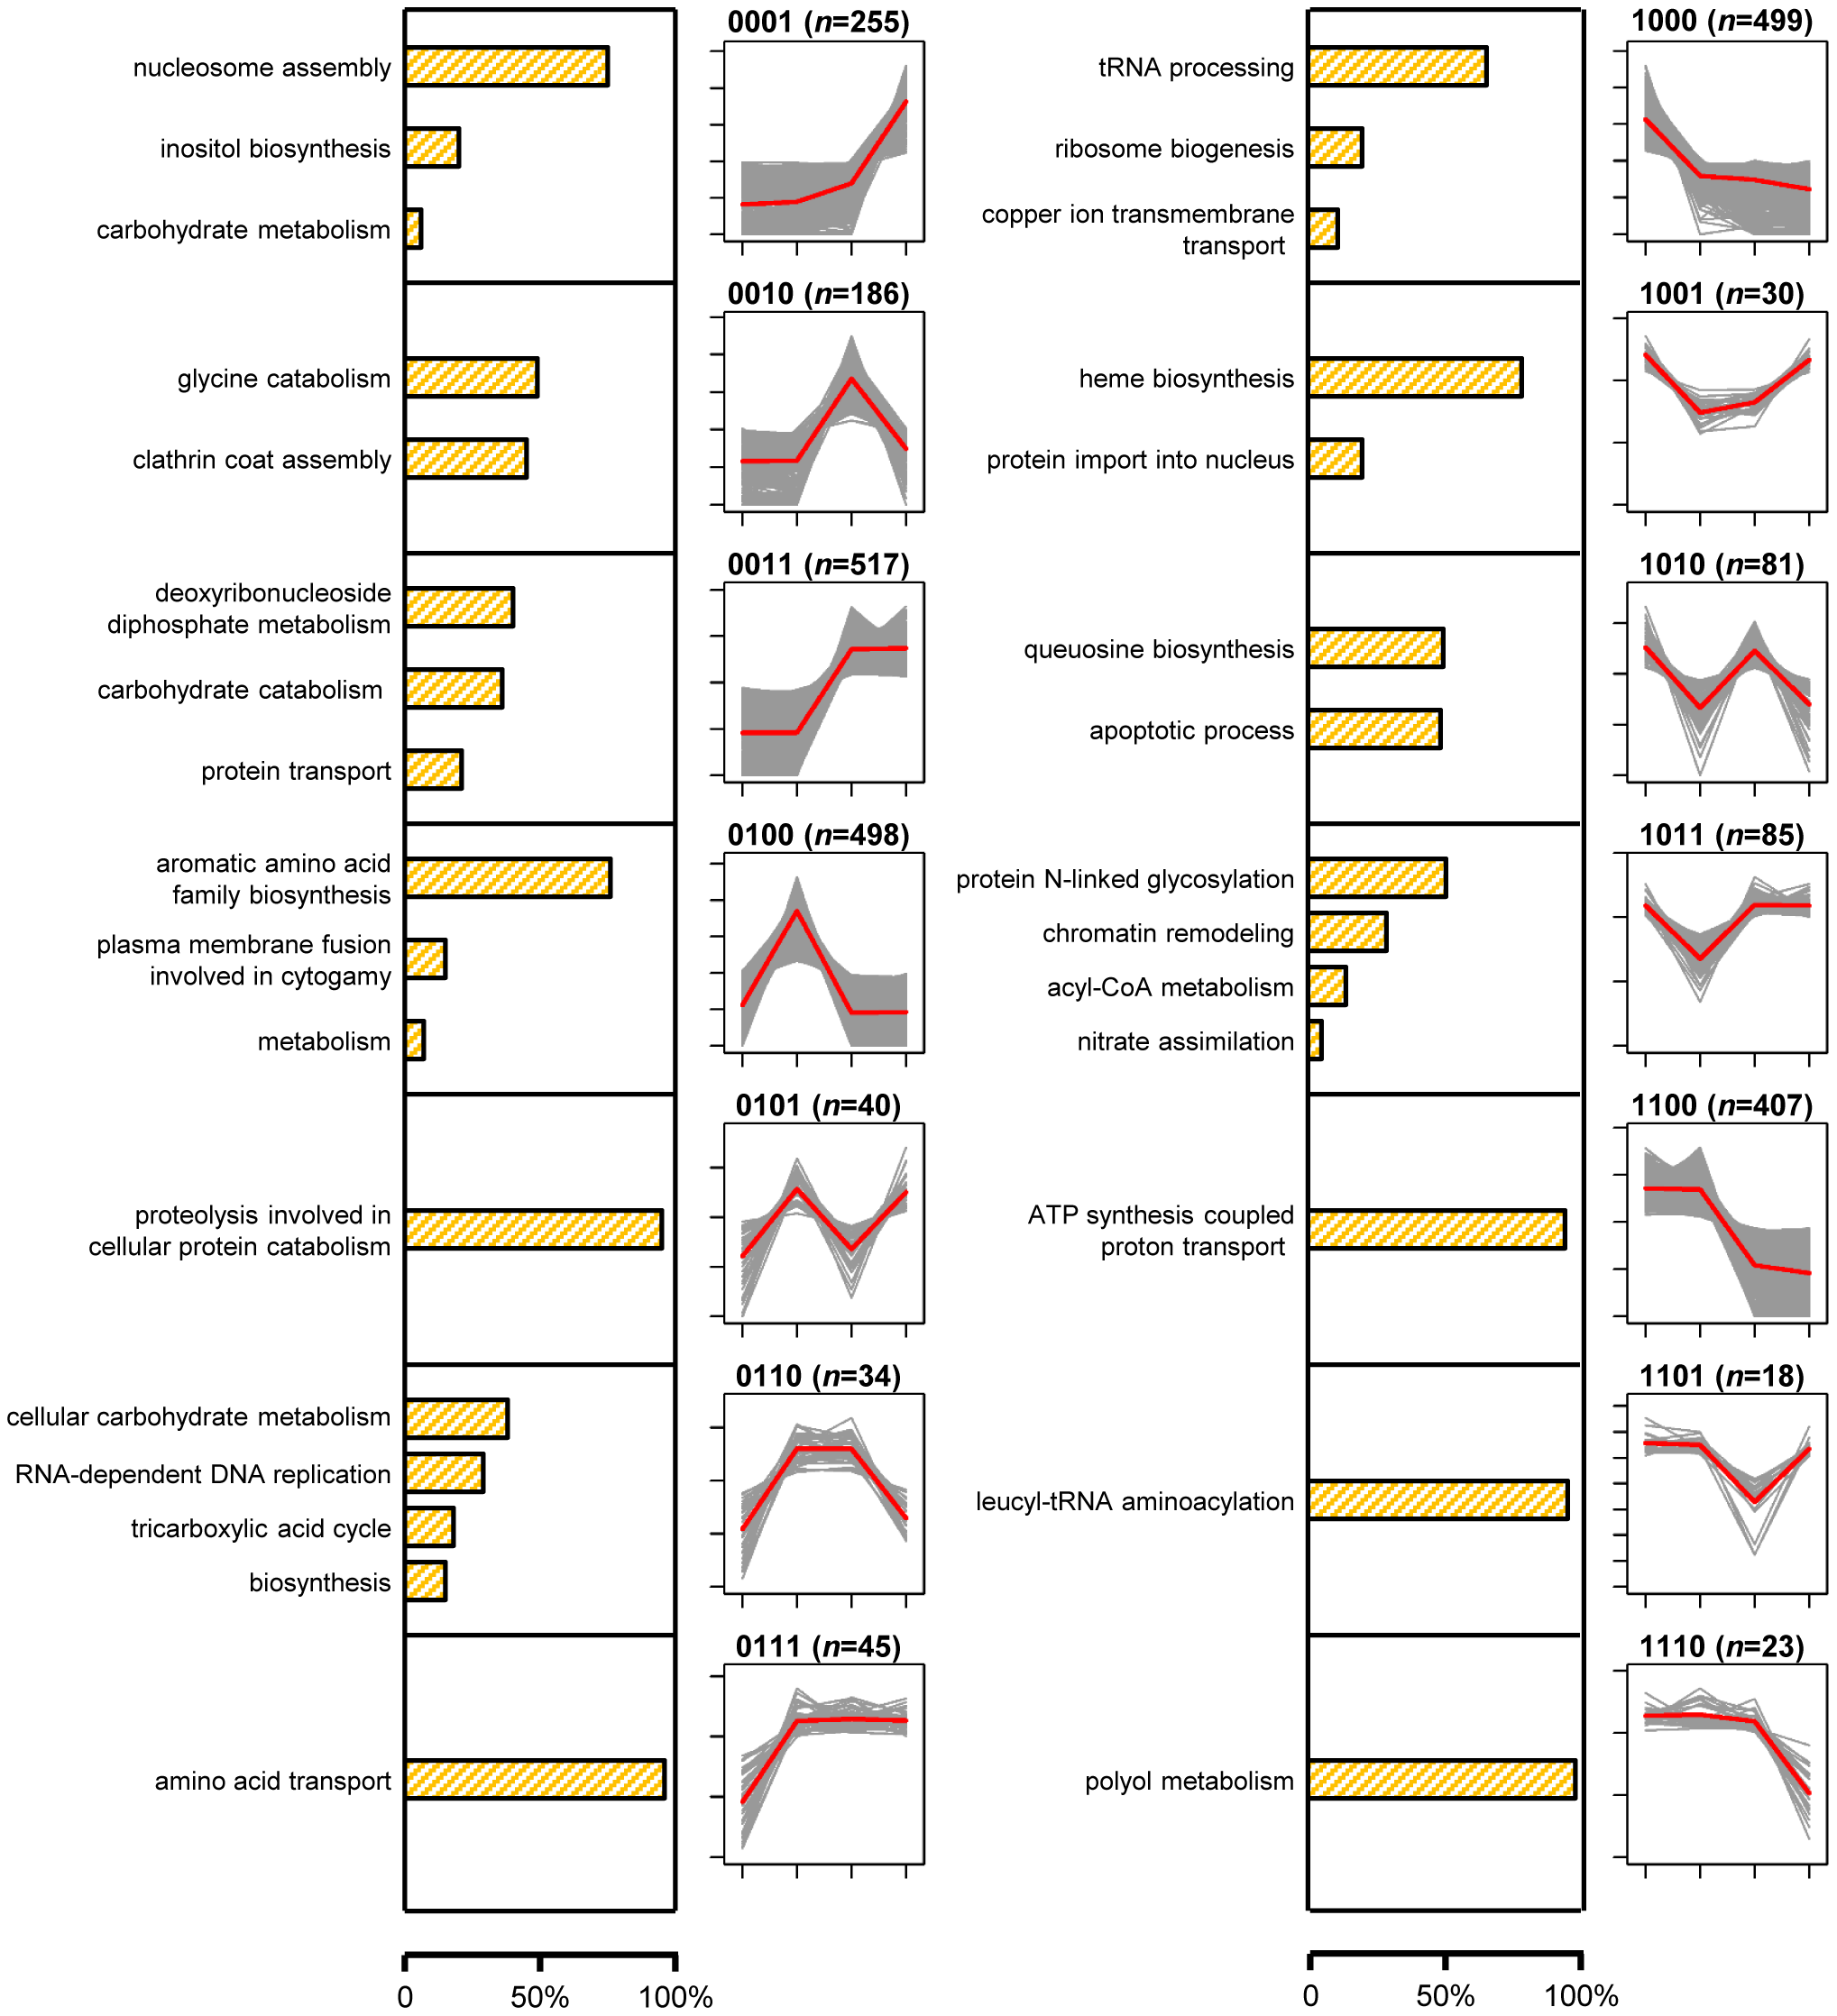 Proportions of genes with the GO term-defined functions and gene expression profiles of 14 signature expression patterns.